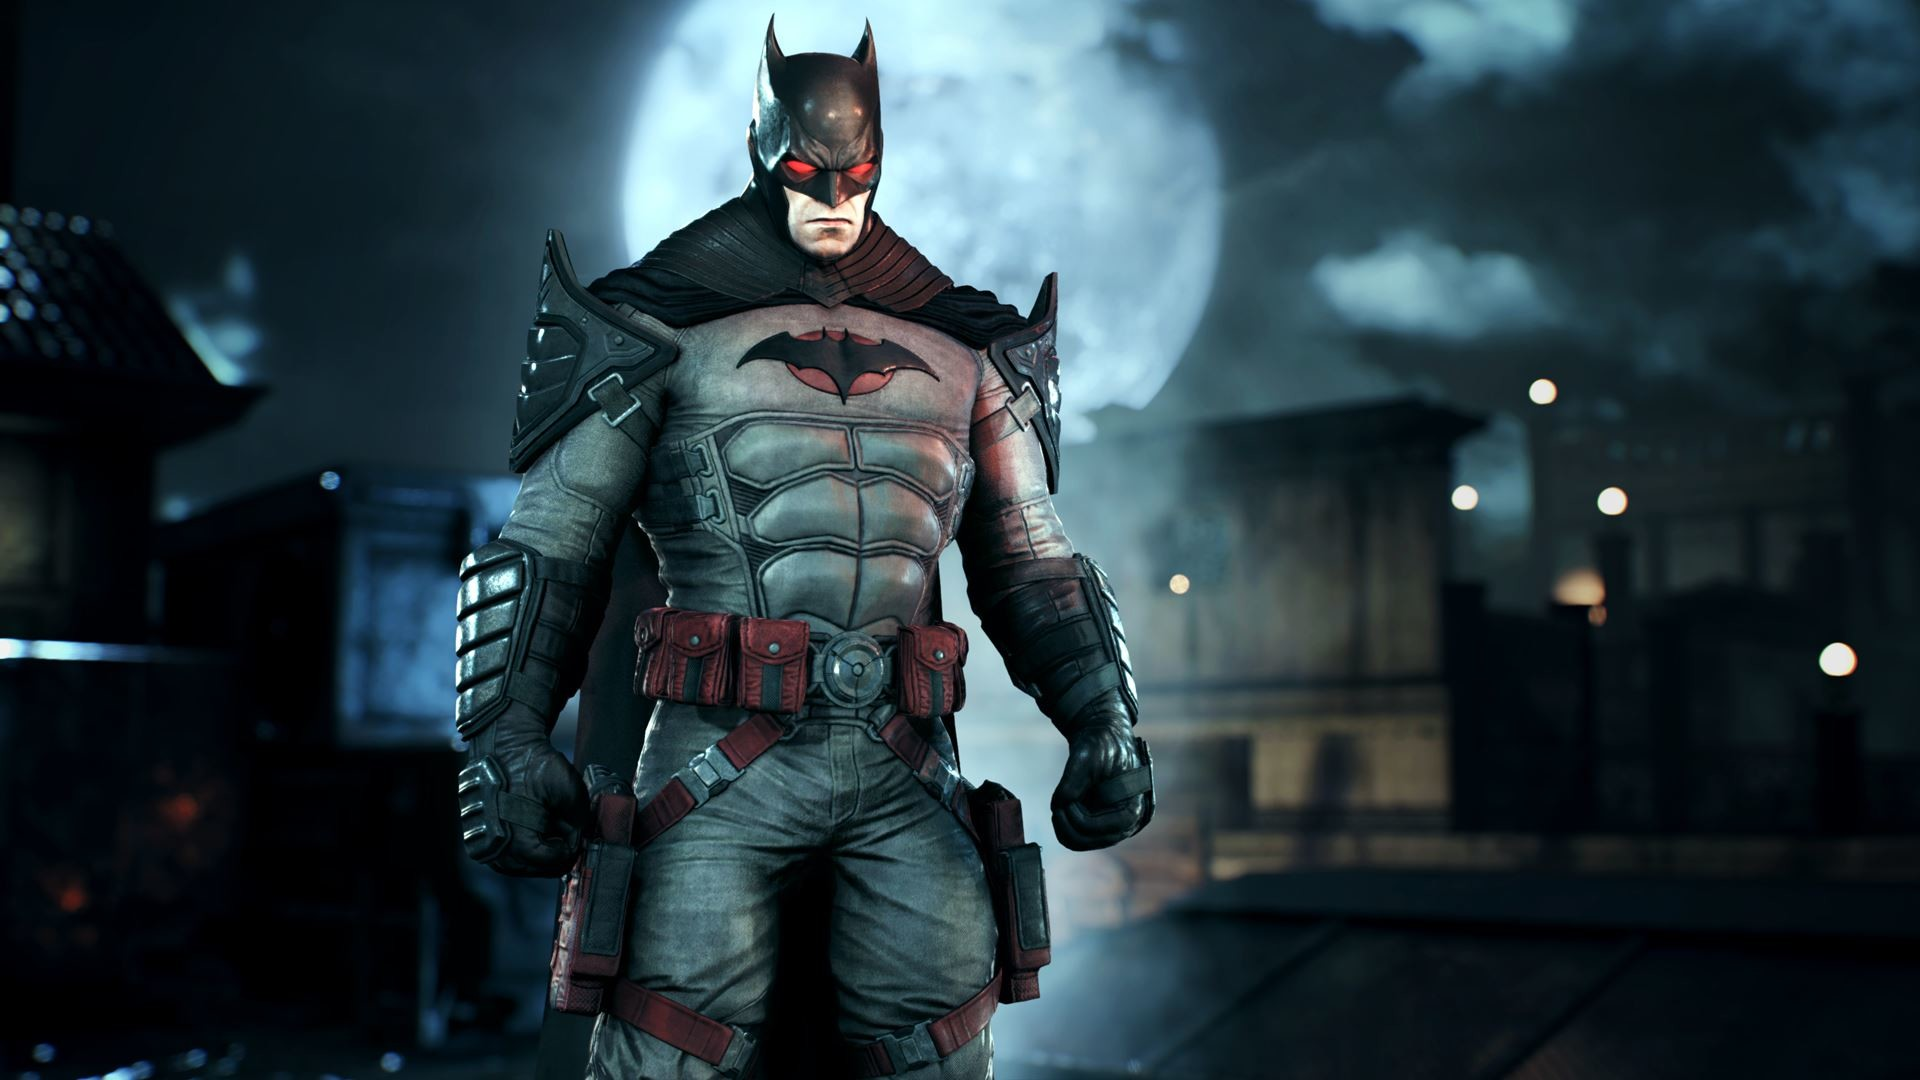 Re: A Arkham Reboot Or Series of A Different Kind